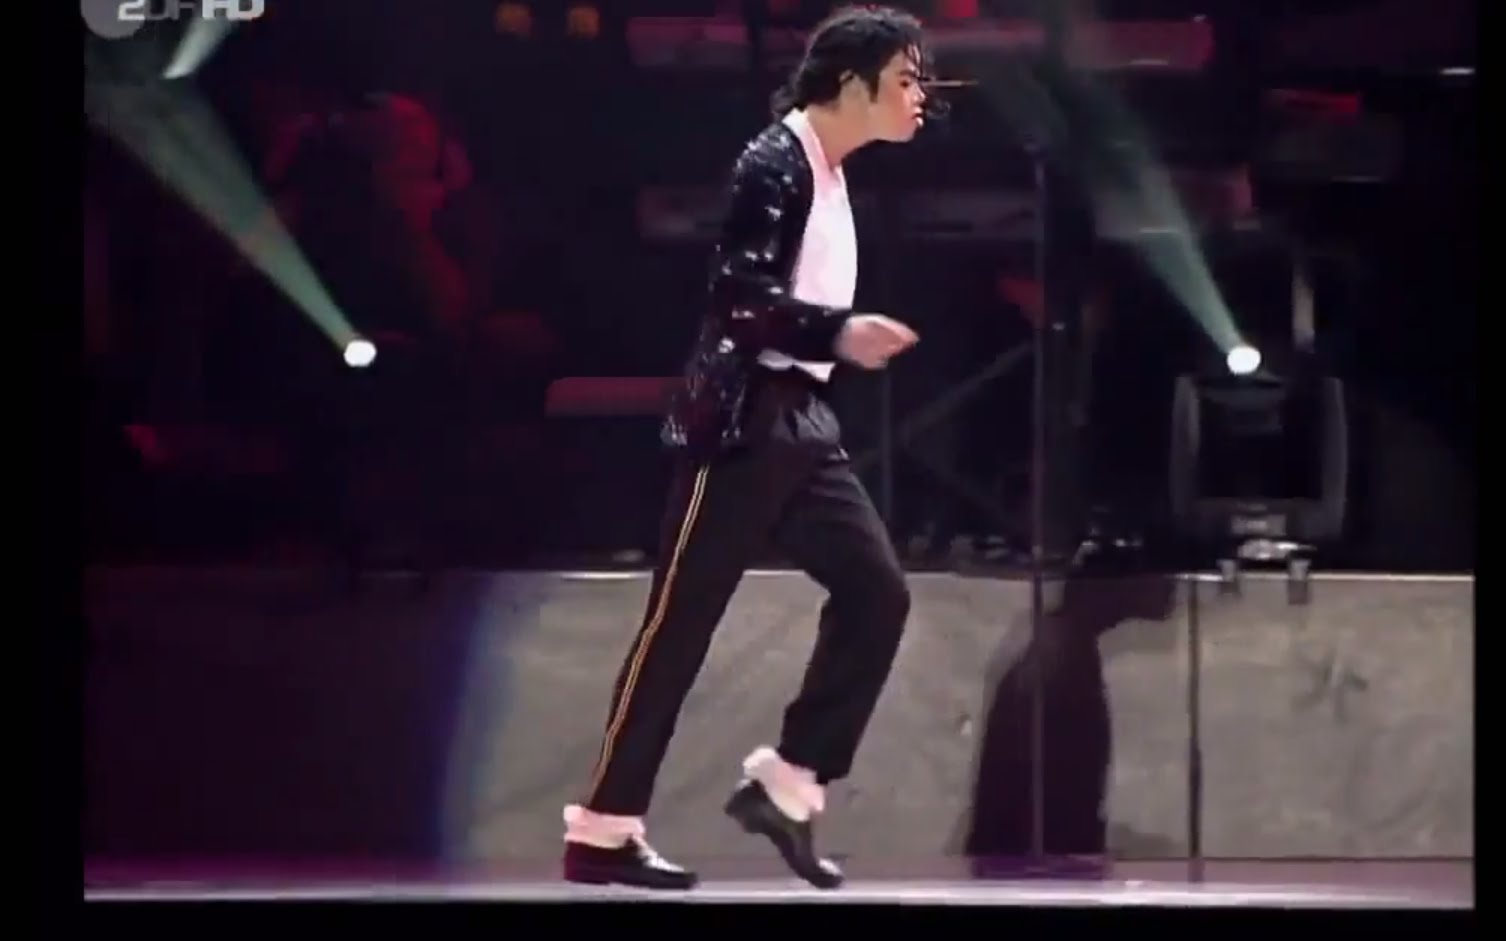 Michael Jackson's Moonwalk Shoes Are Up for Auction for $10K